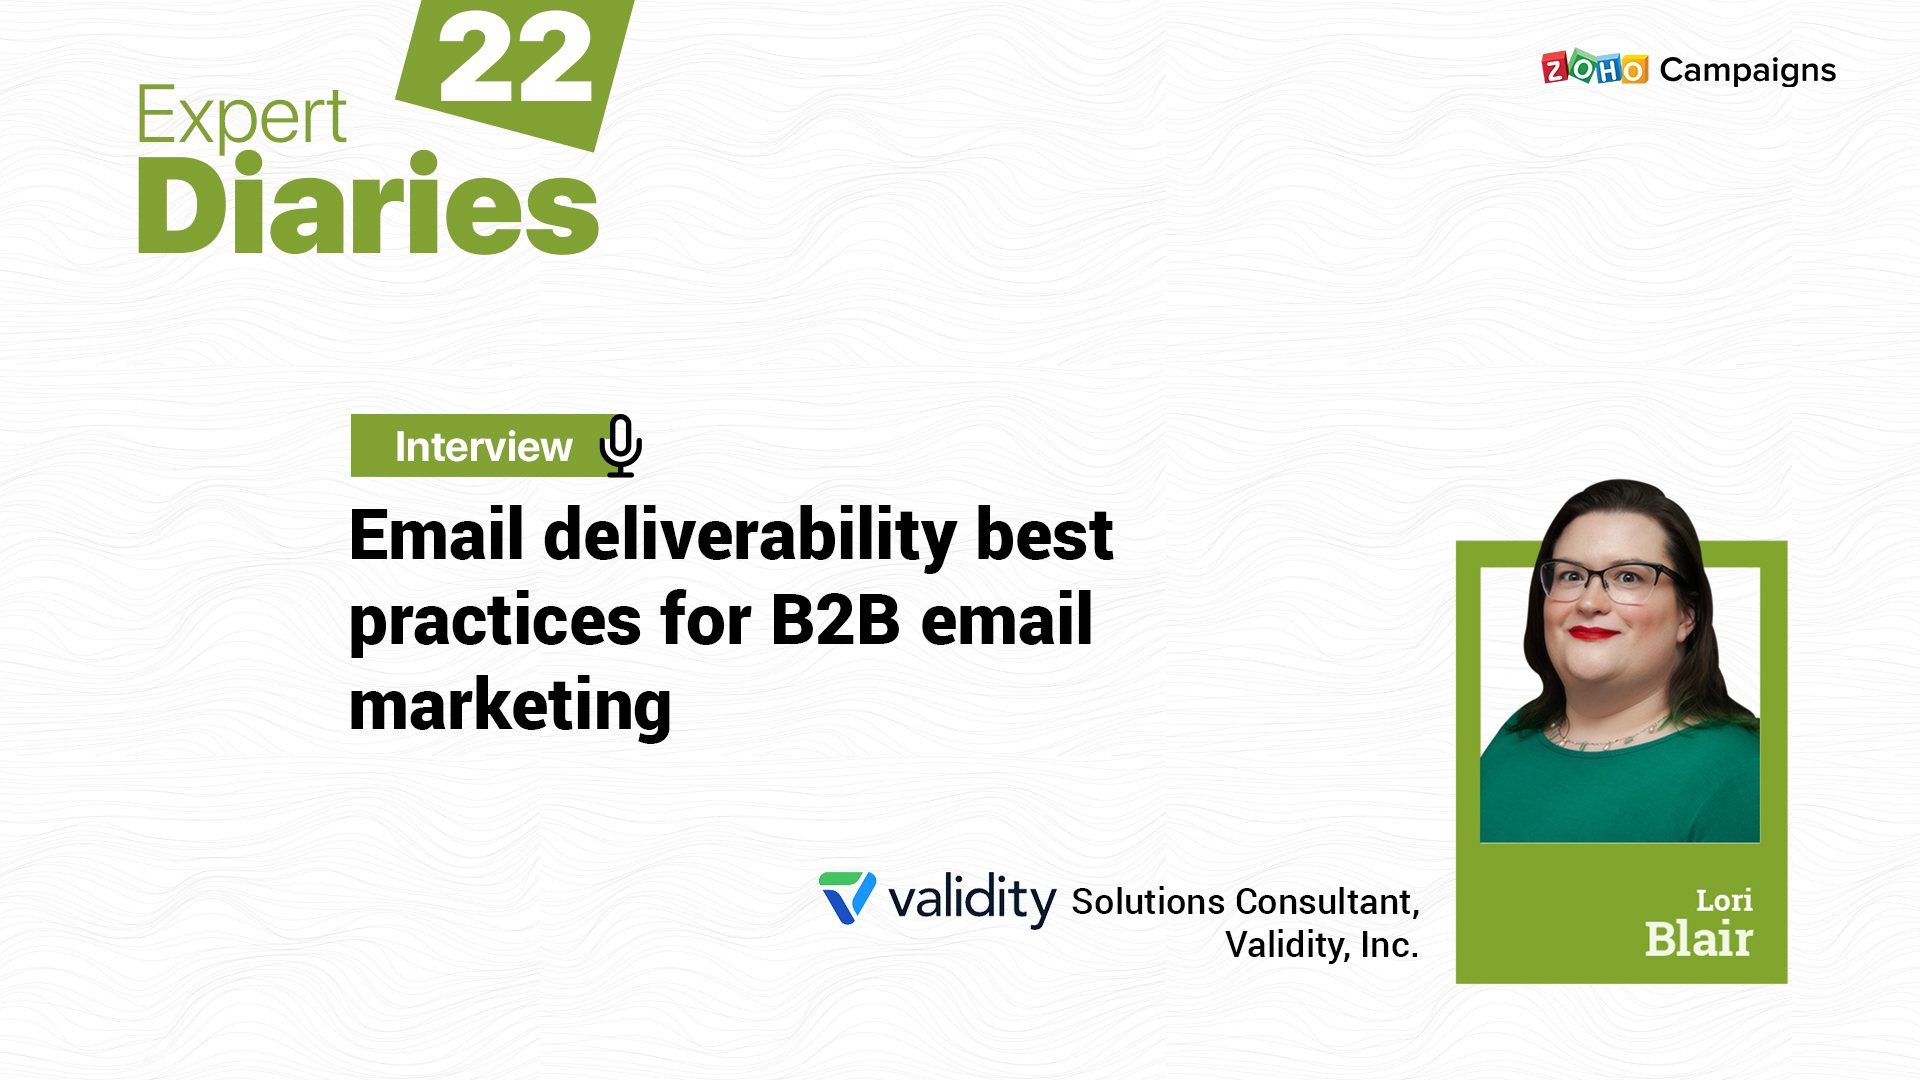 Email deliverability best practices for B2B email marketing